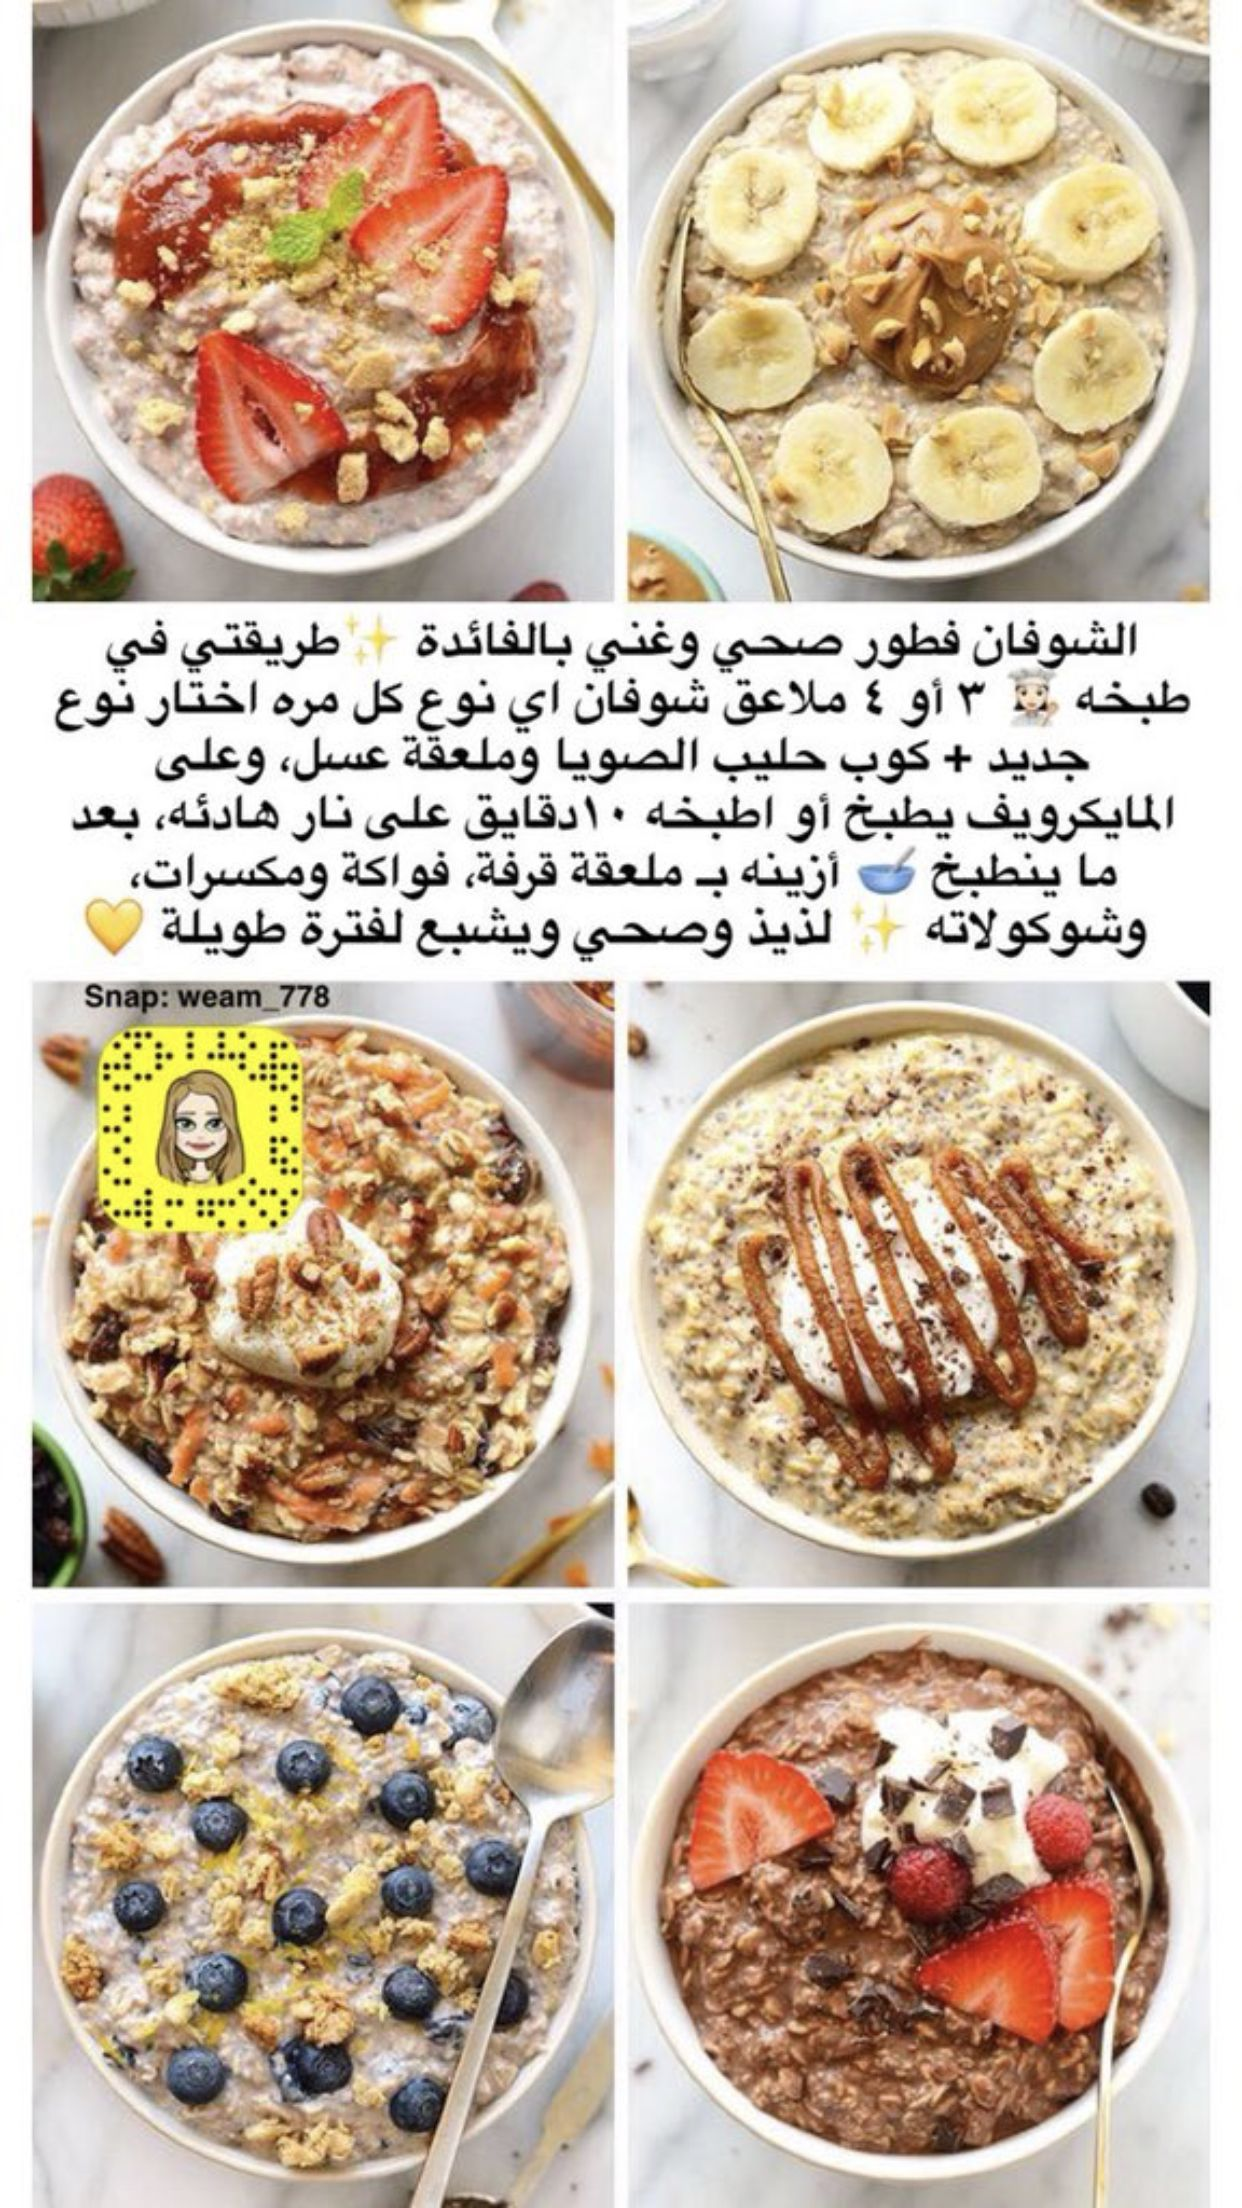 حلا الشوفان Health Fitness Food Helthy Food Workout Food